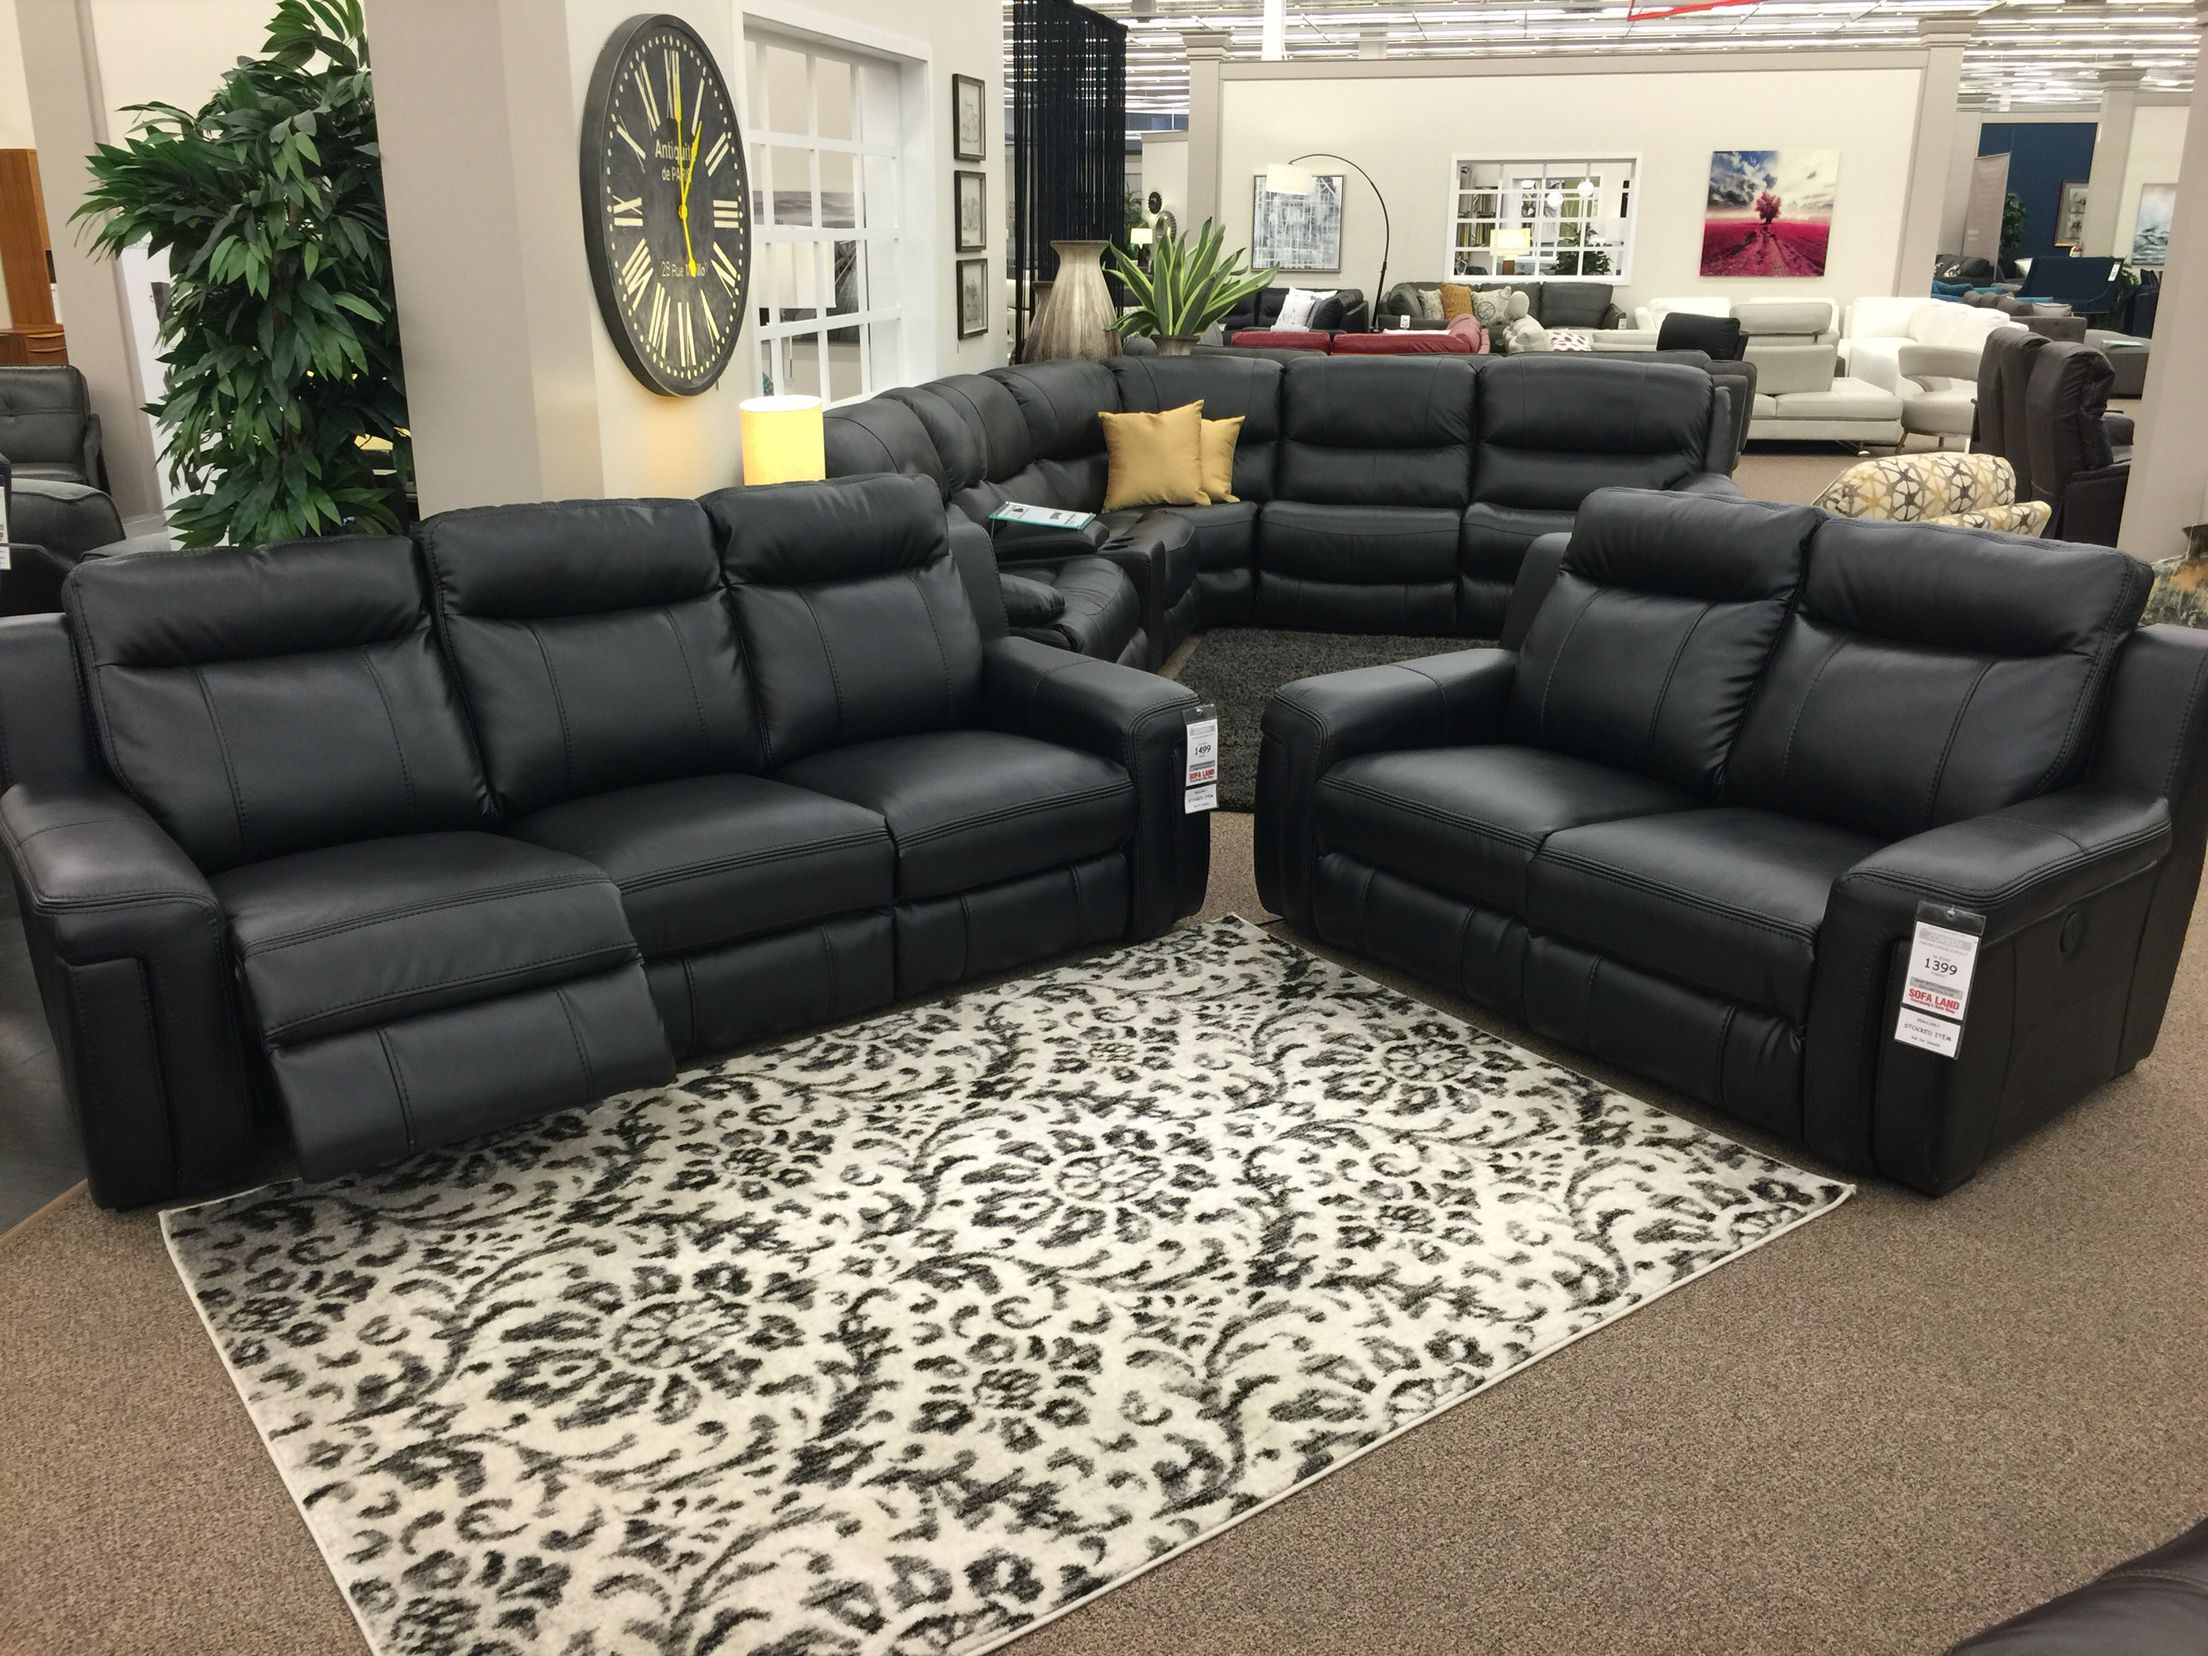 The Corbin Features Power Recliners Usb Charging Stations This